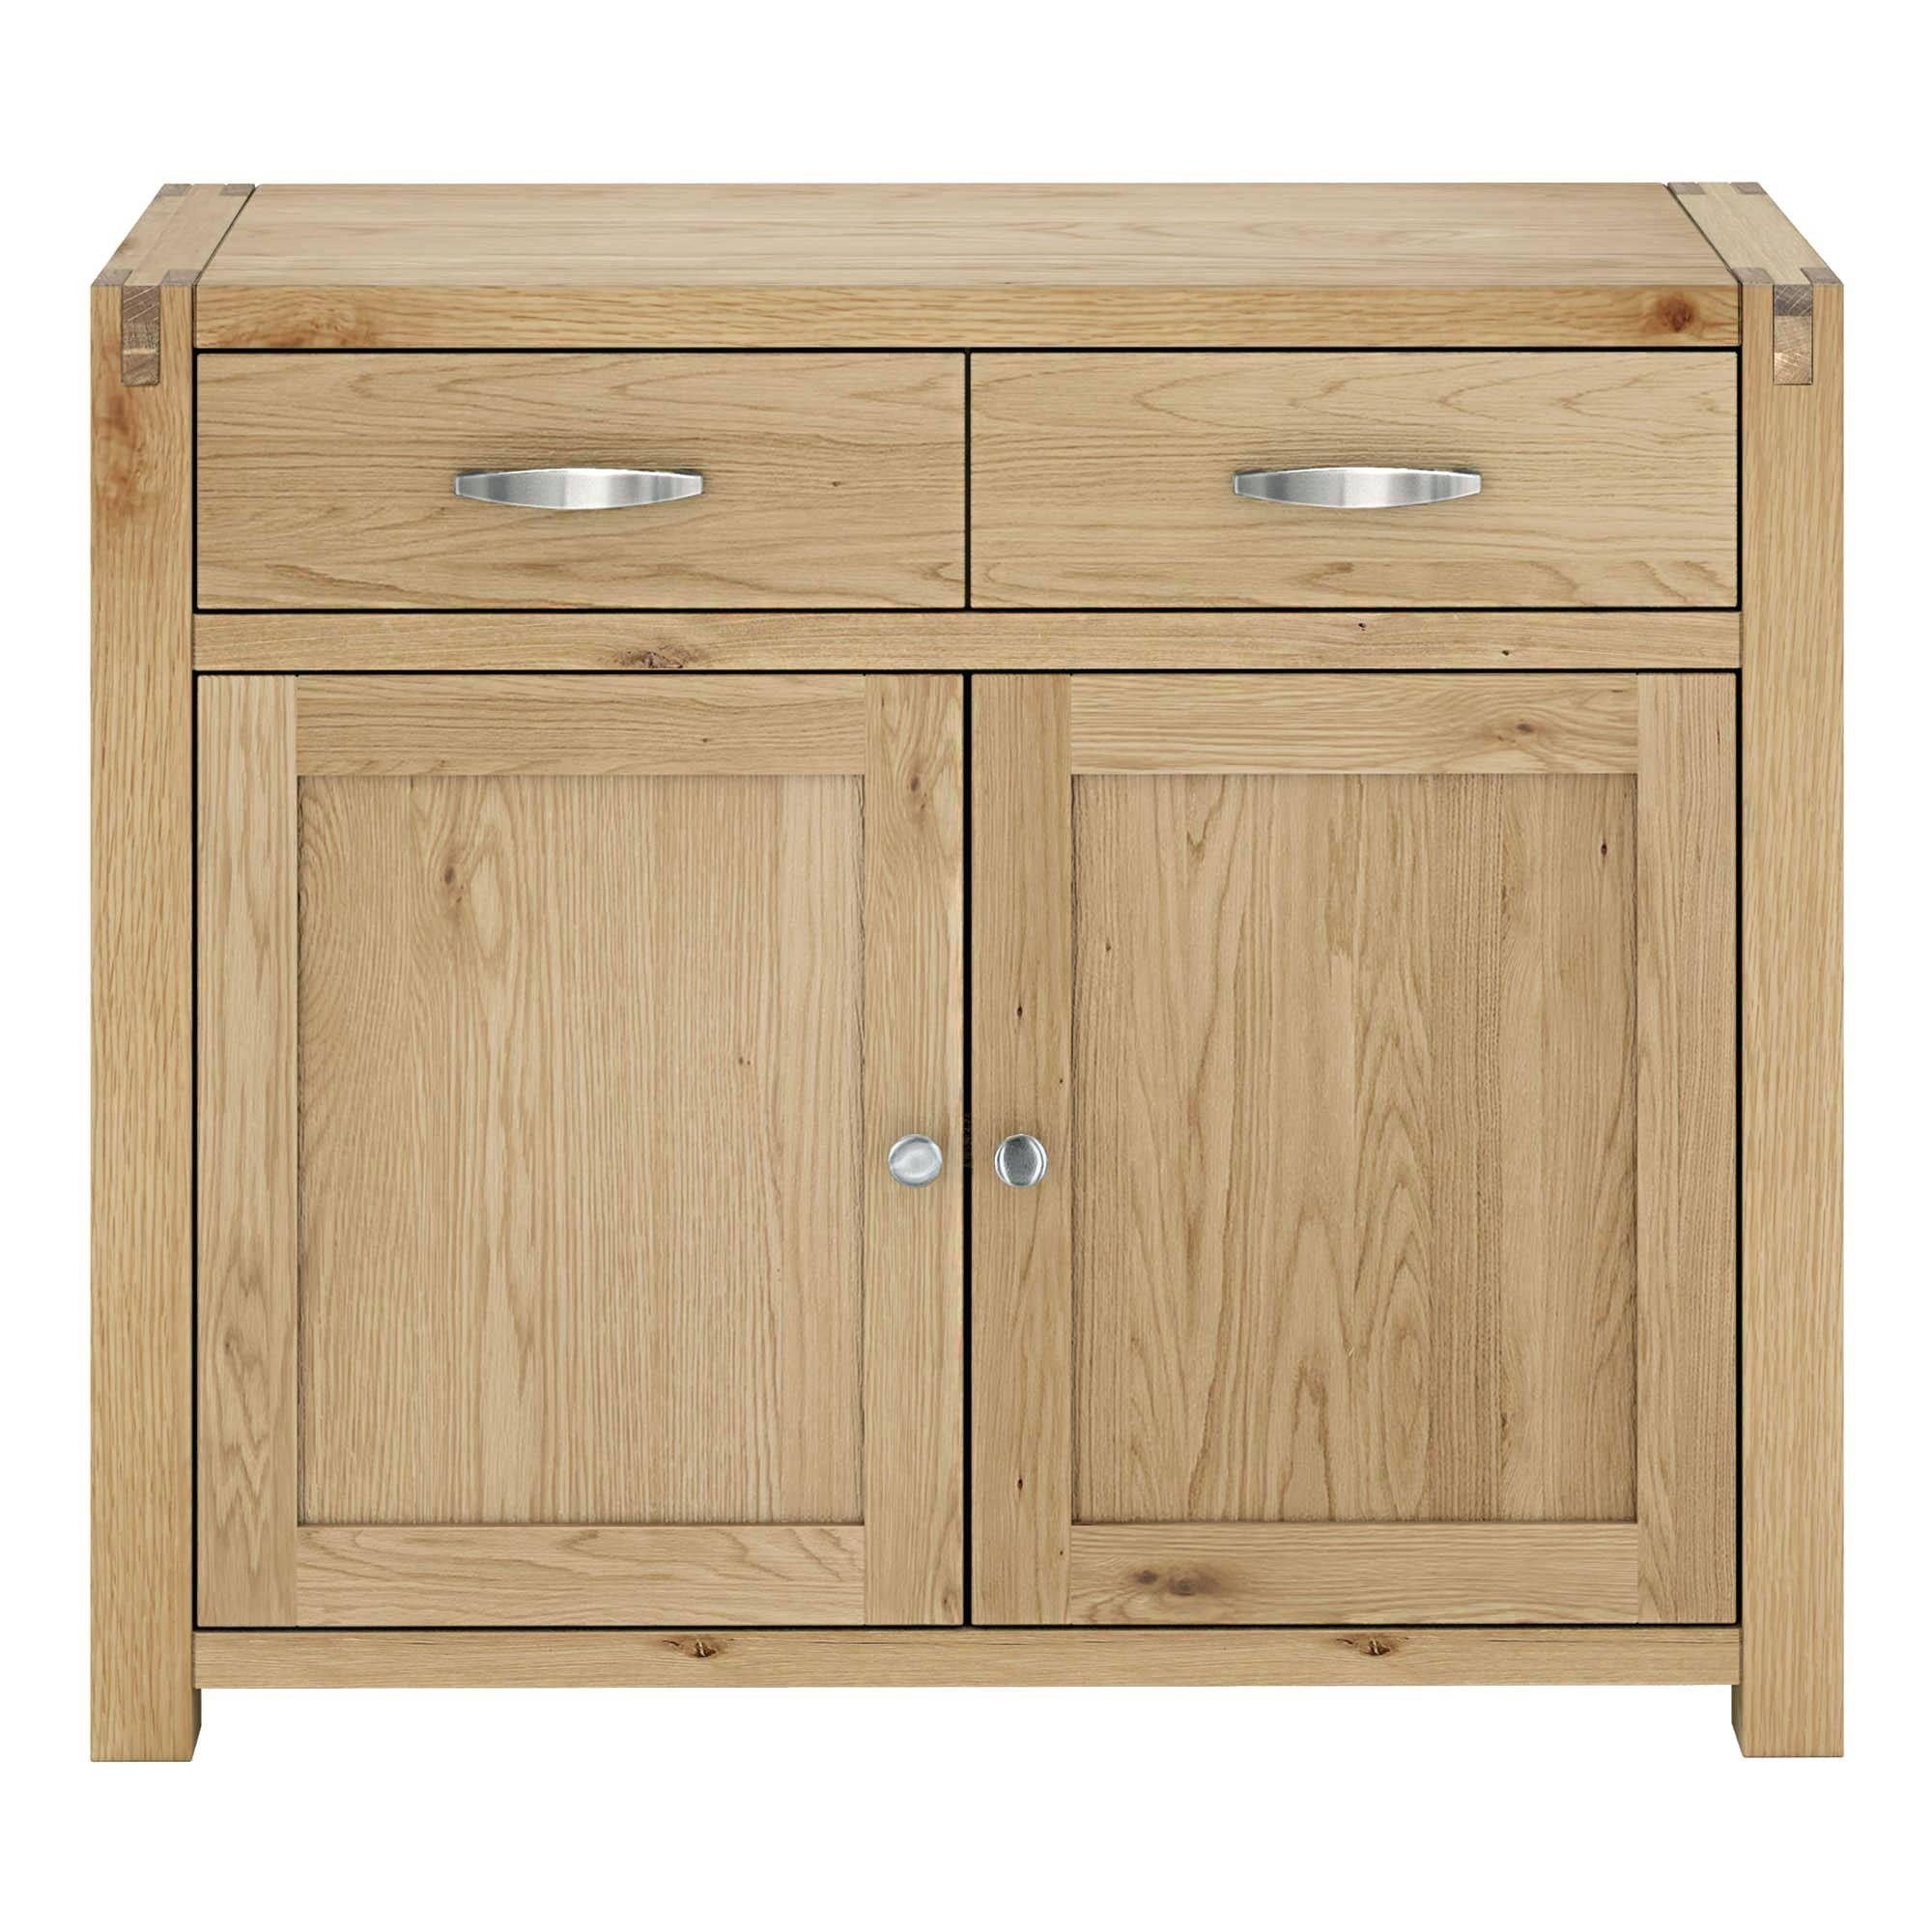 Oak Sideboards Express Delivery Alto Natural Solid Oak Large Regarding Most Recently Released Natural Oak Sideboards (#11 of 15)